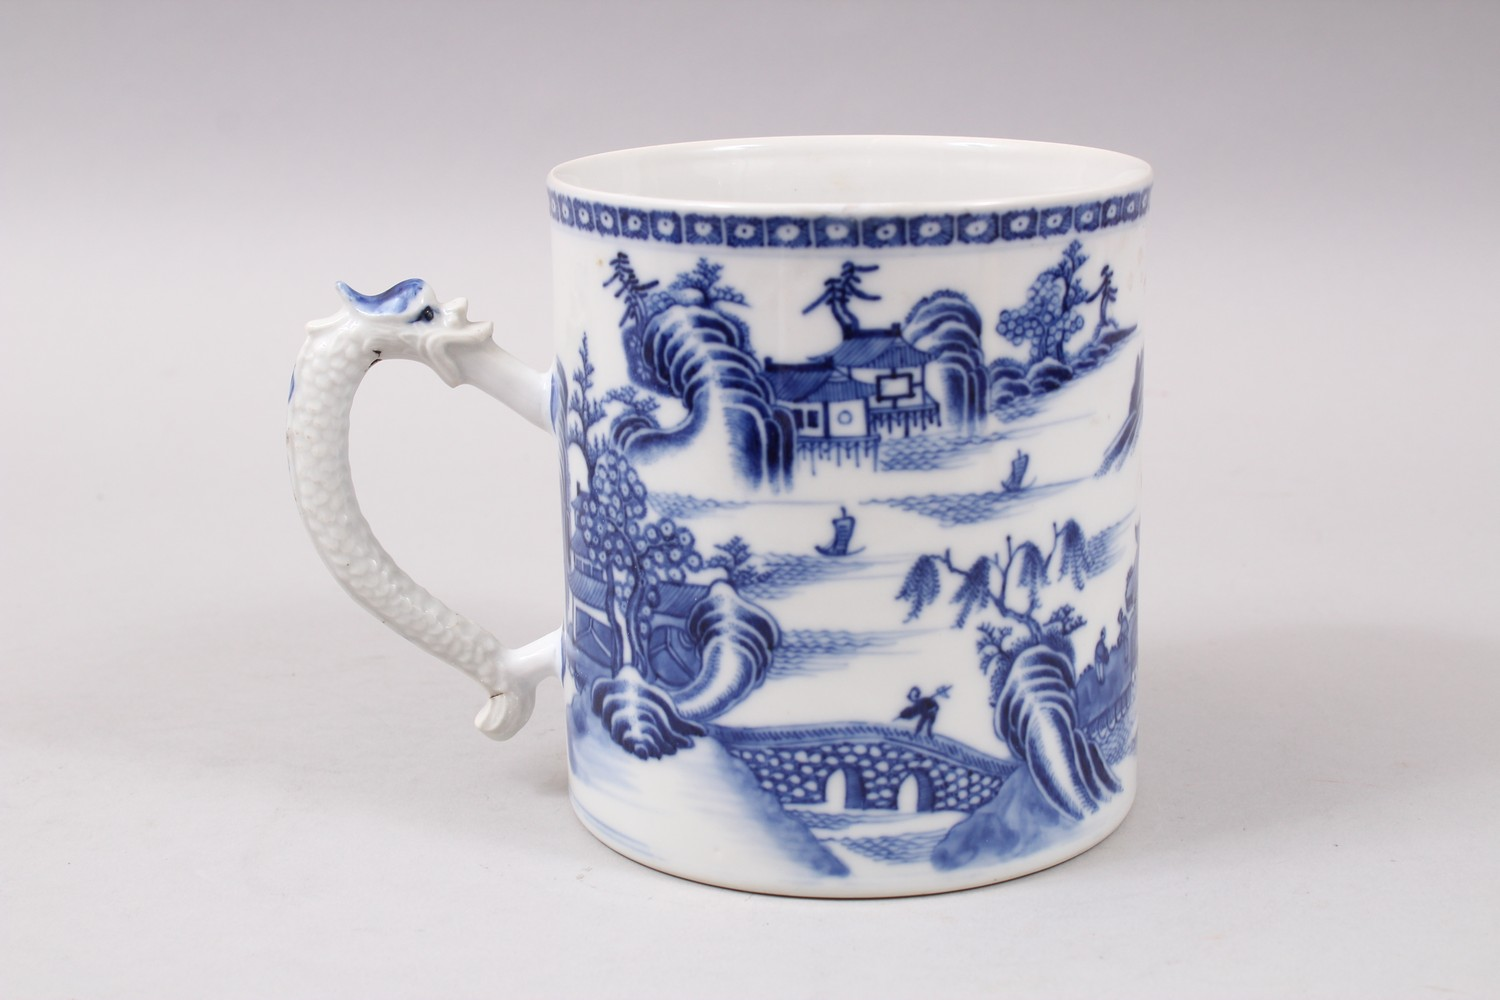 Lot 606 - AN 18TH / 19TH CENTURY CHINESE BLUE & WHITE PORCELAIN MUG, decorated with scenes of landscapes, with